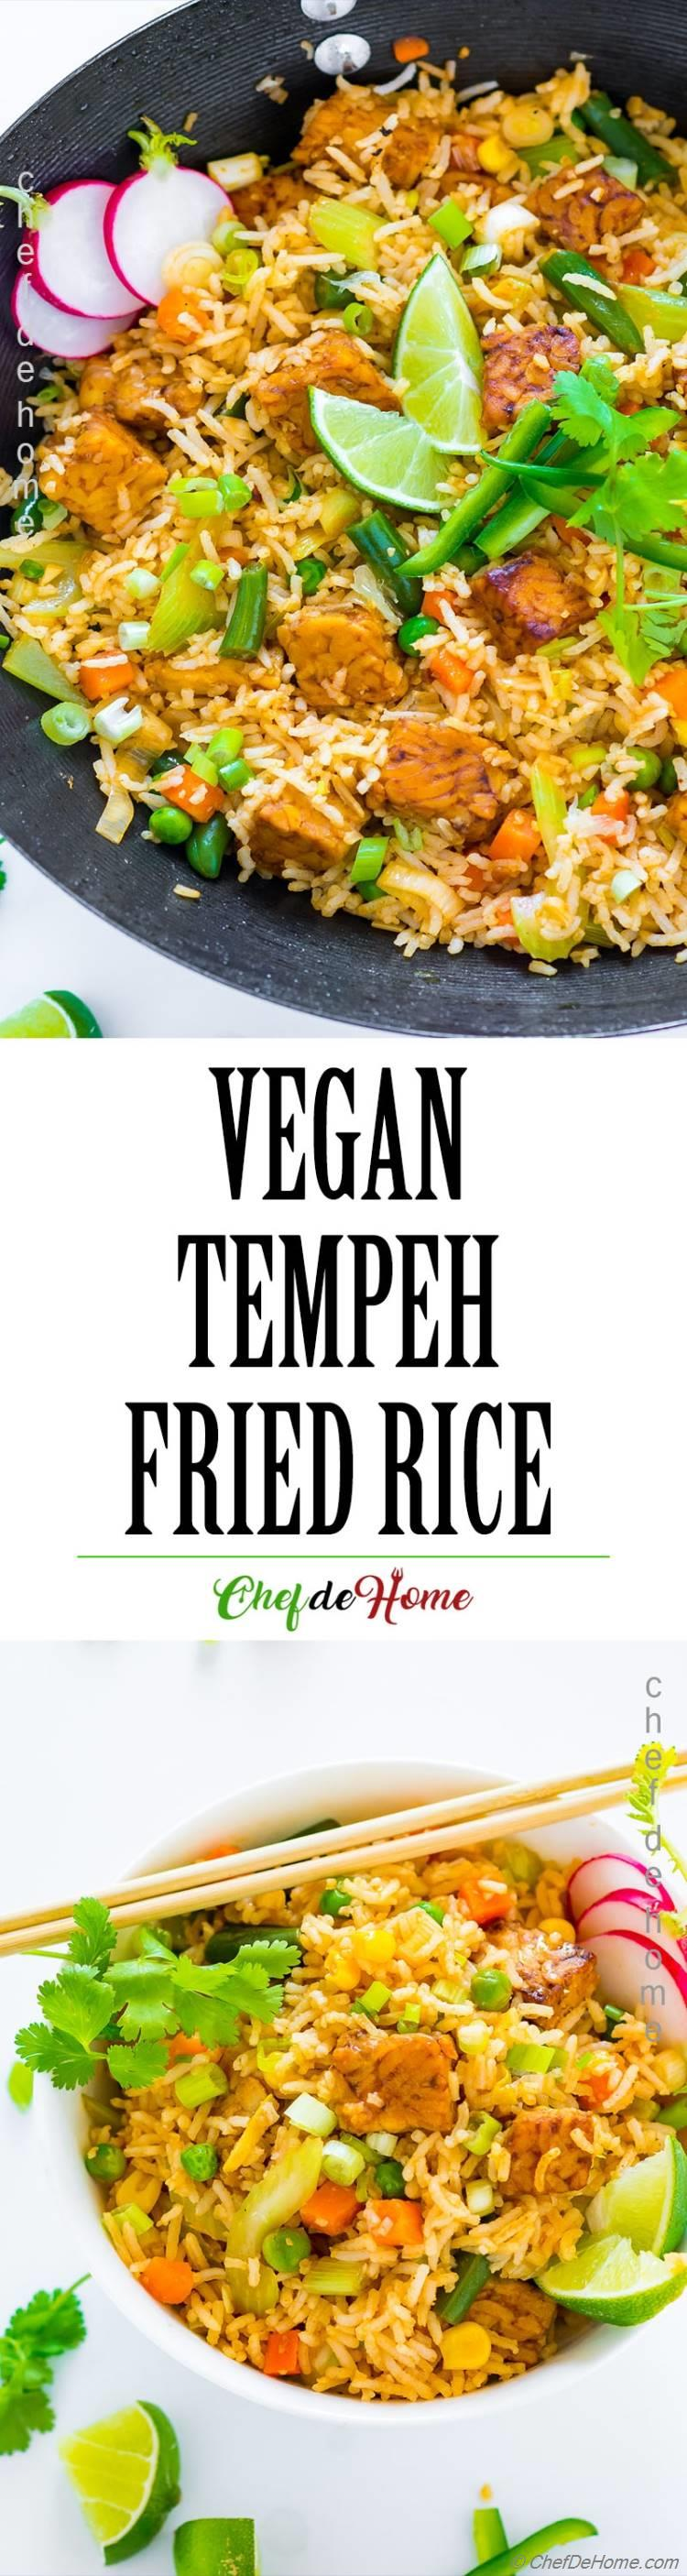 Vegetable Fried Rice with Tempeh